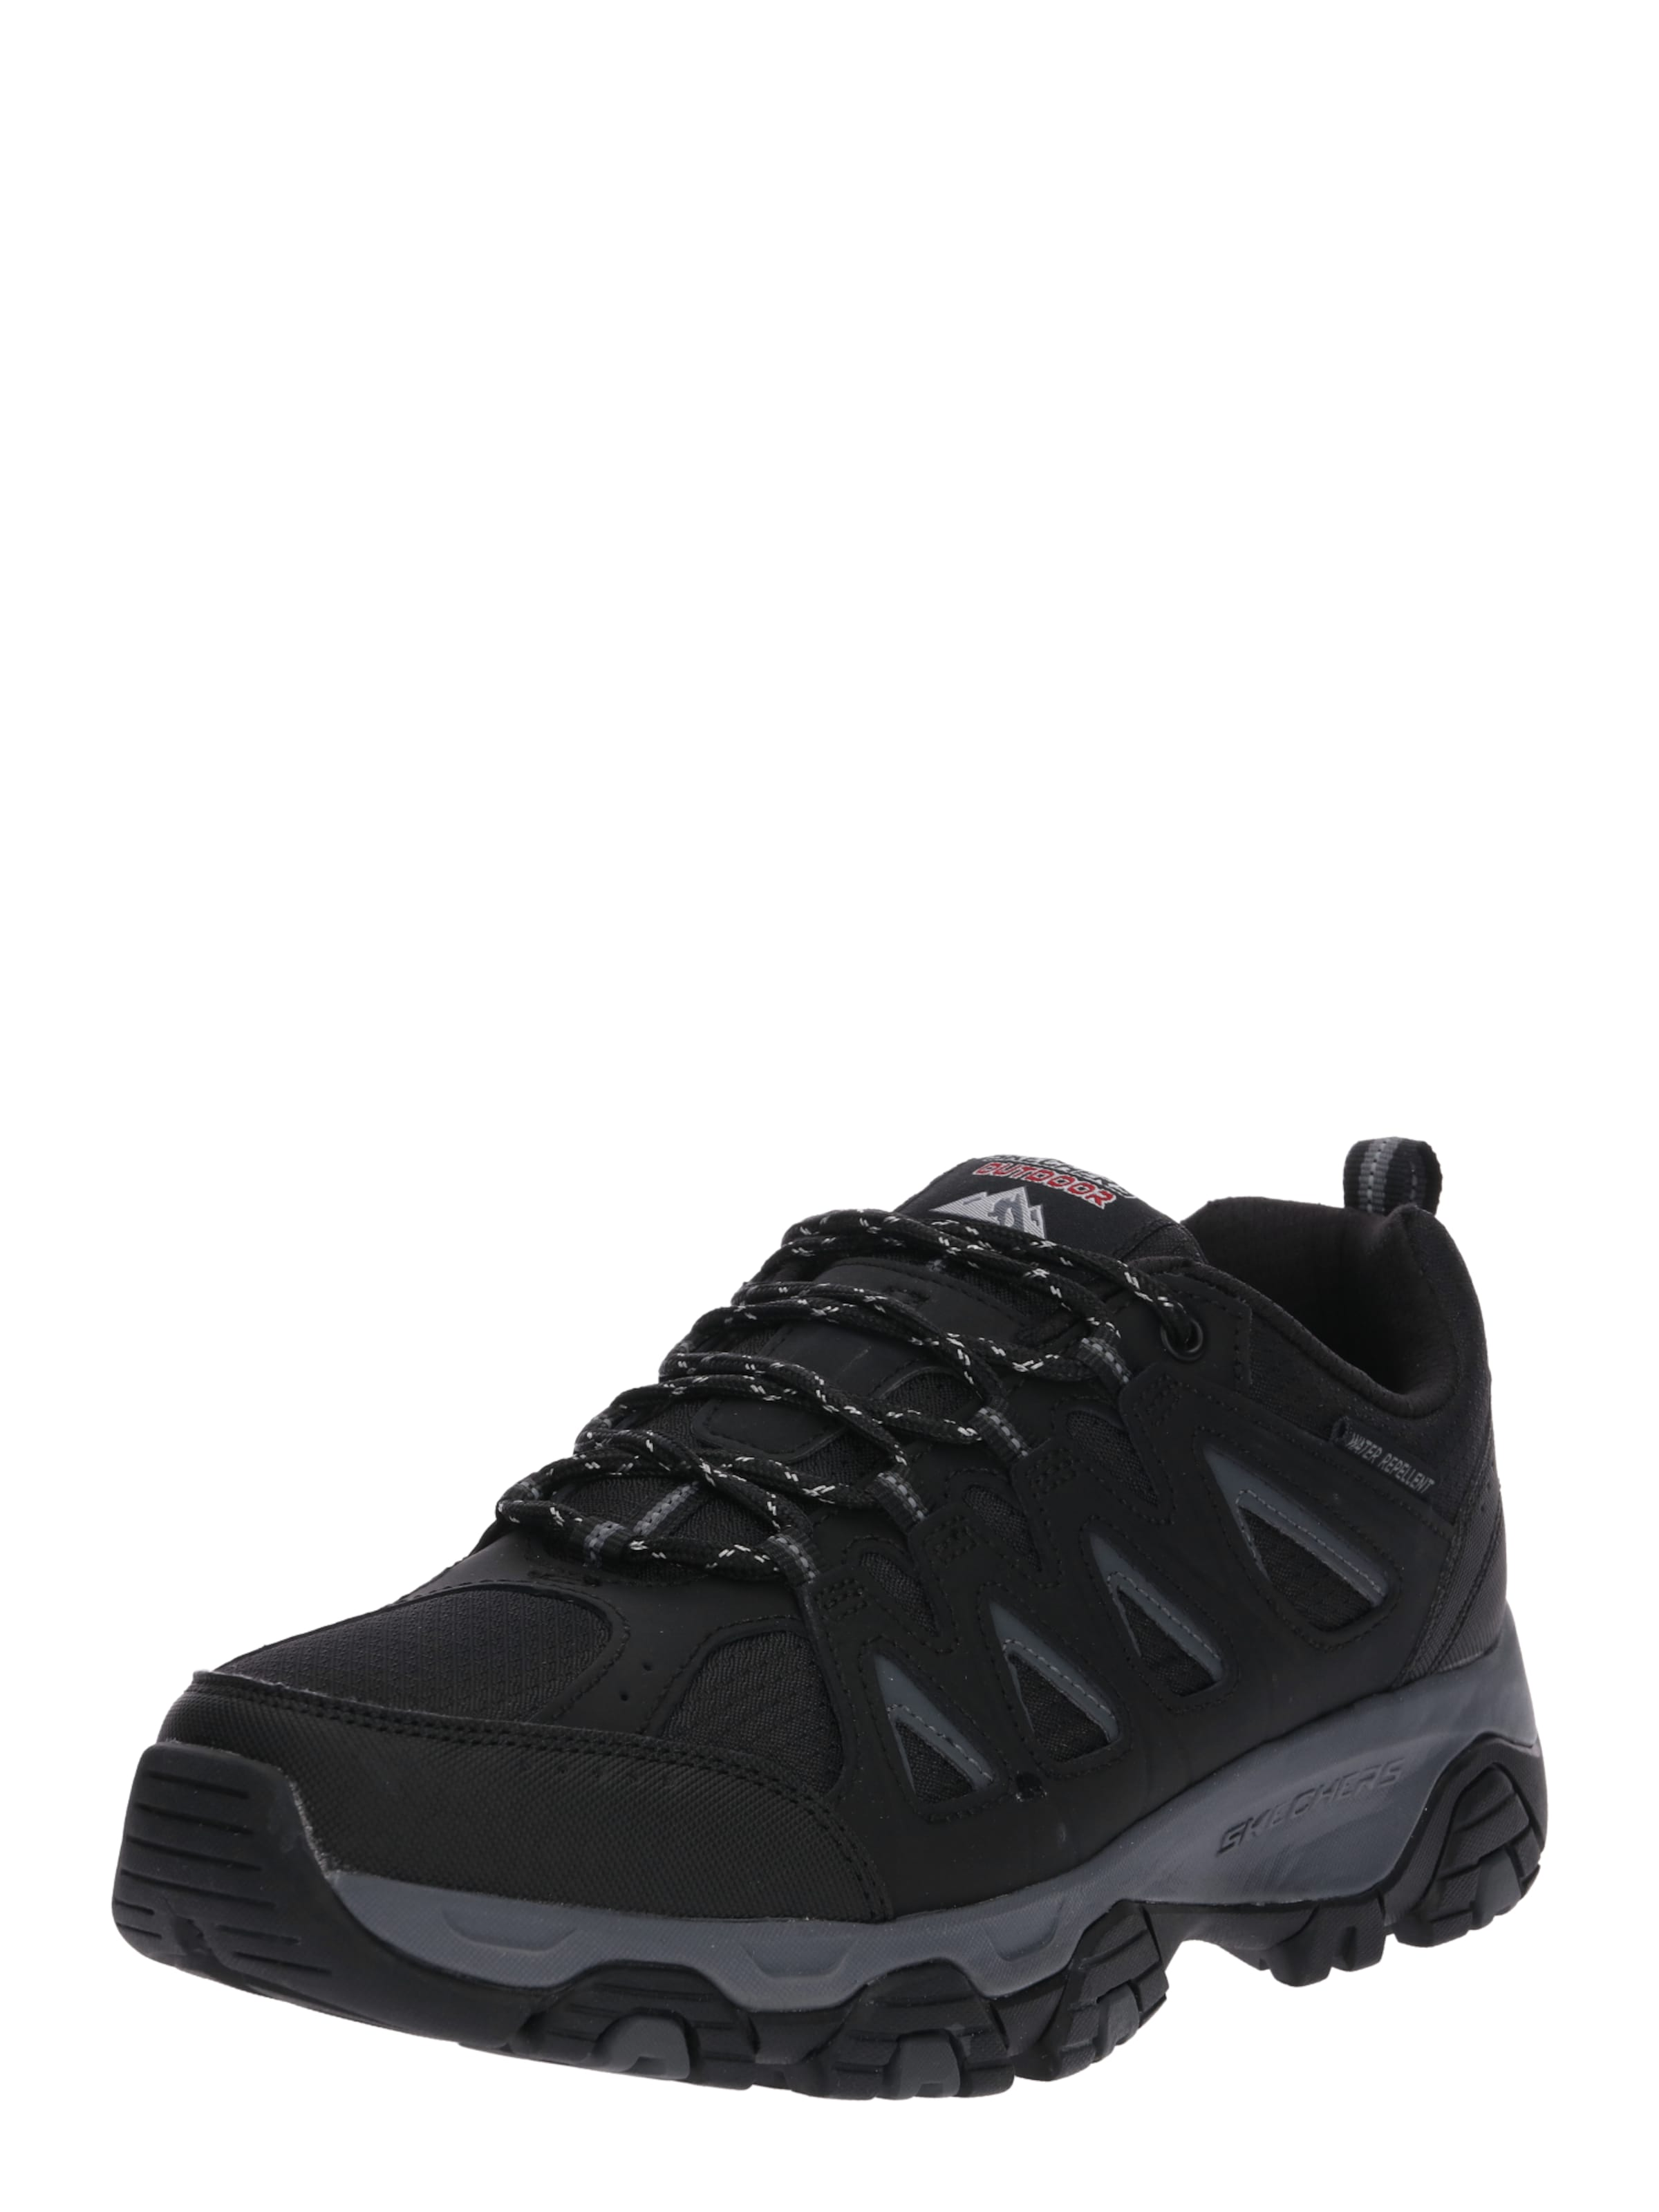 Basses ' Noir Baskets Skechers 'mfterrabite En Kul1Jc3TF